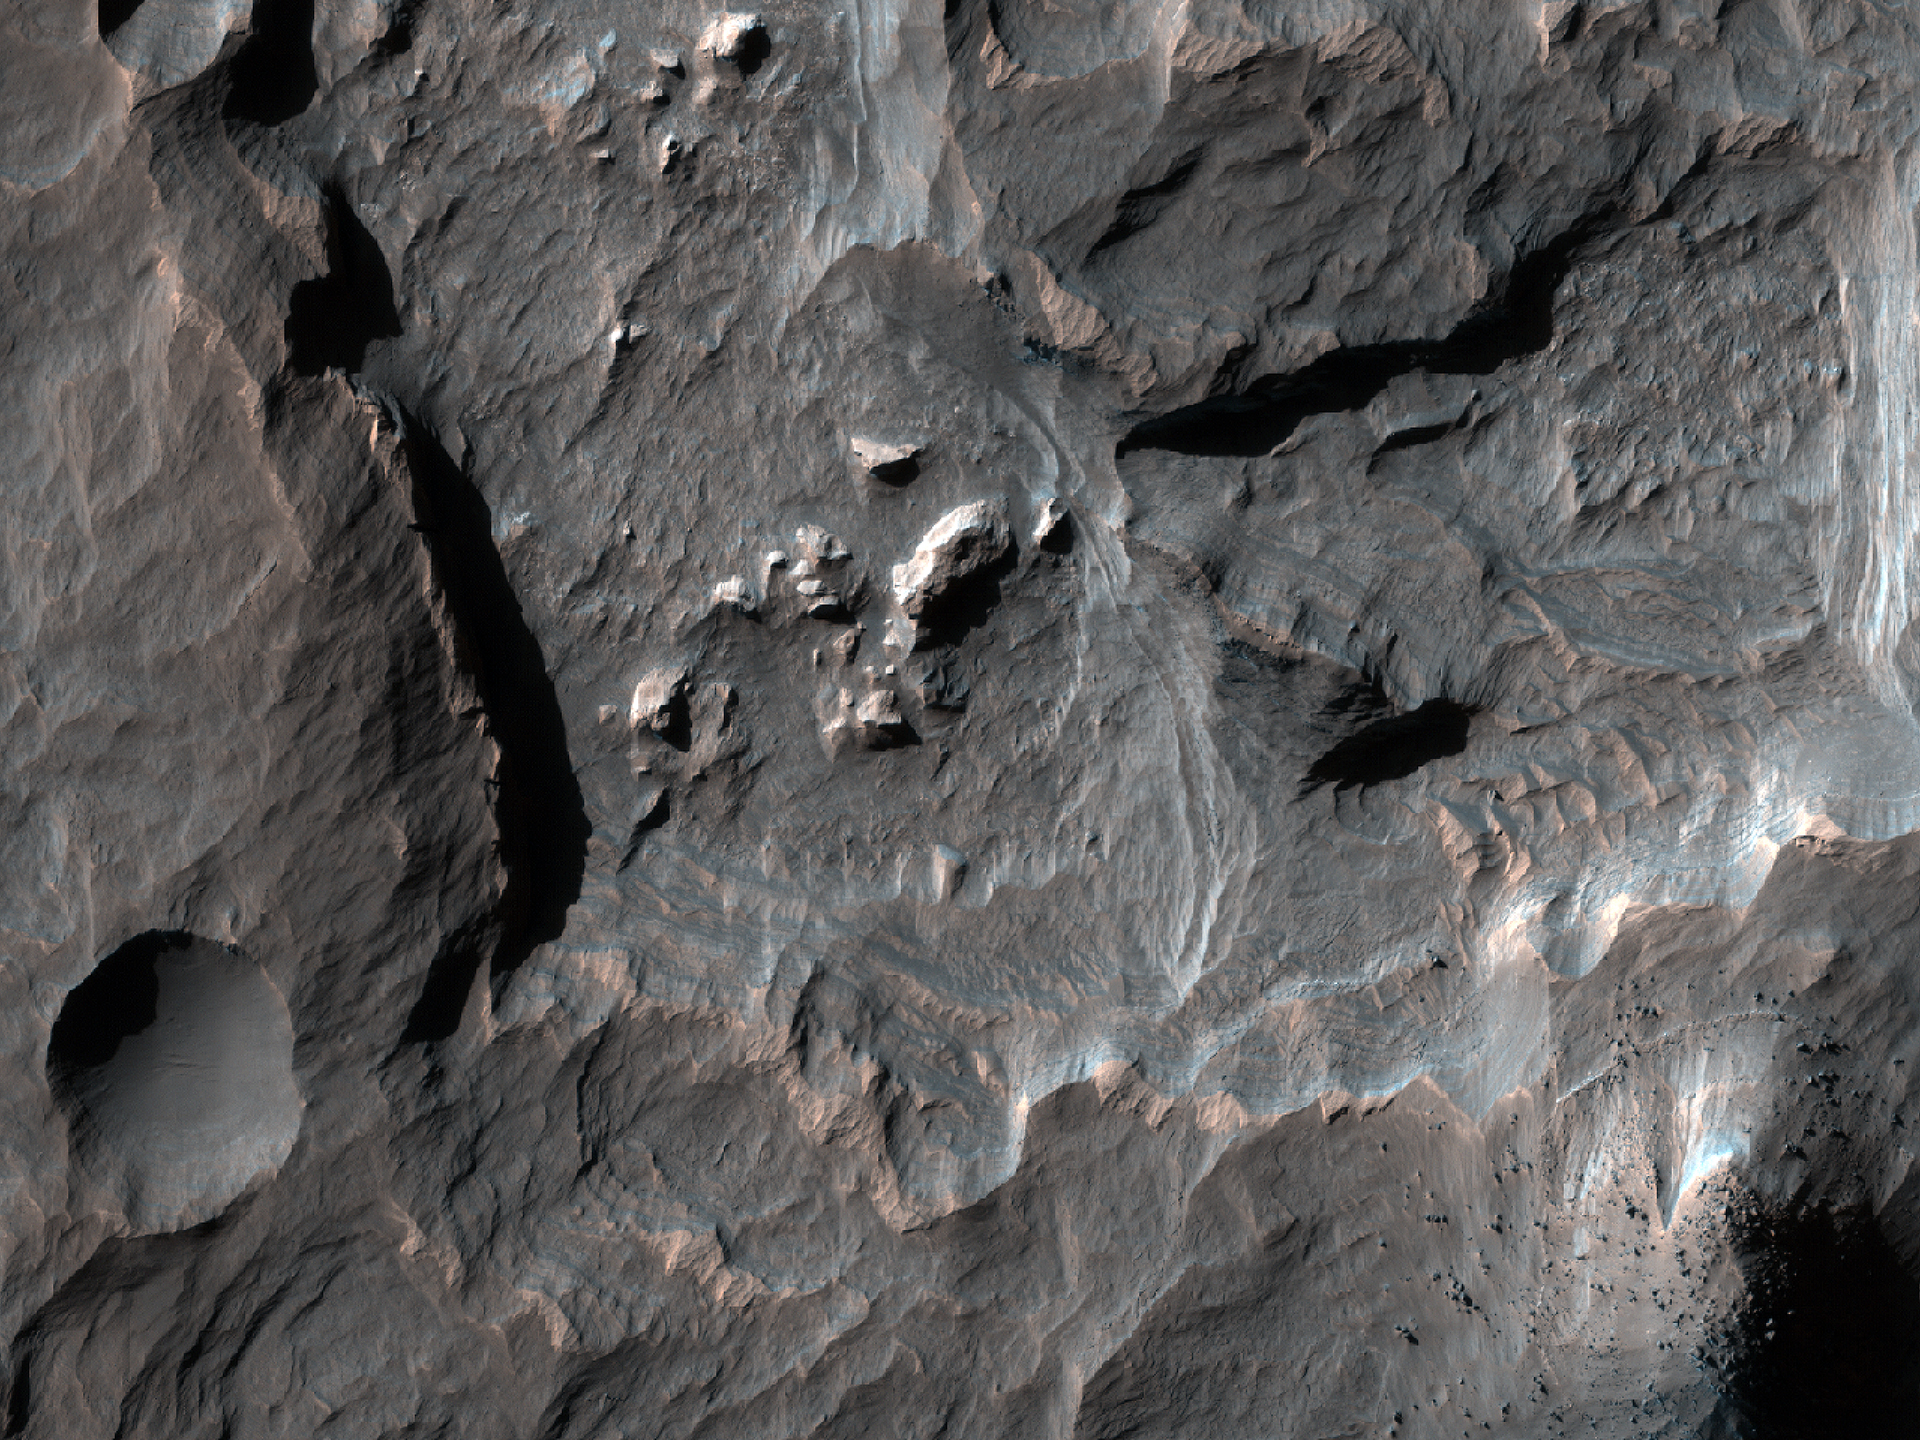 Sedimentary Layers in Columbus Crater